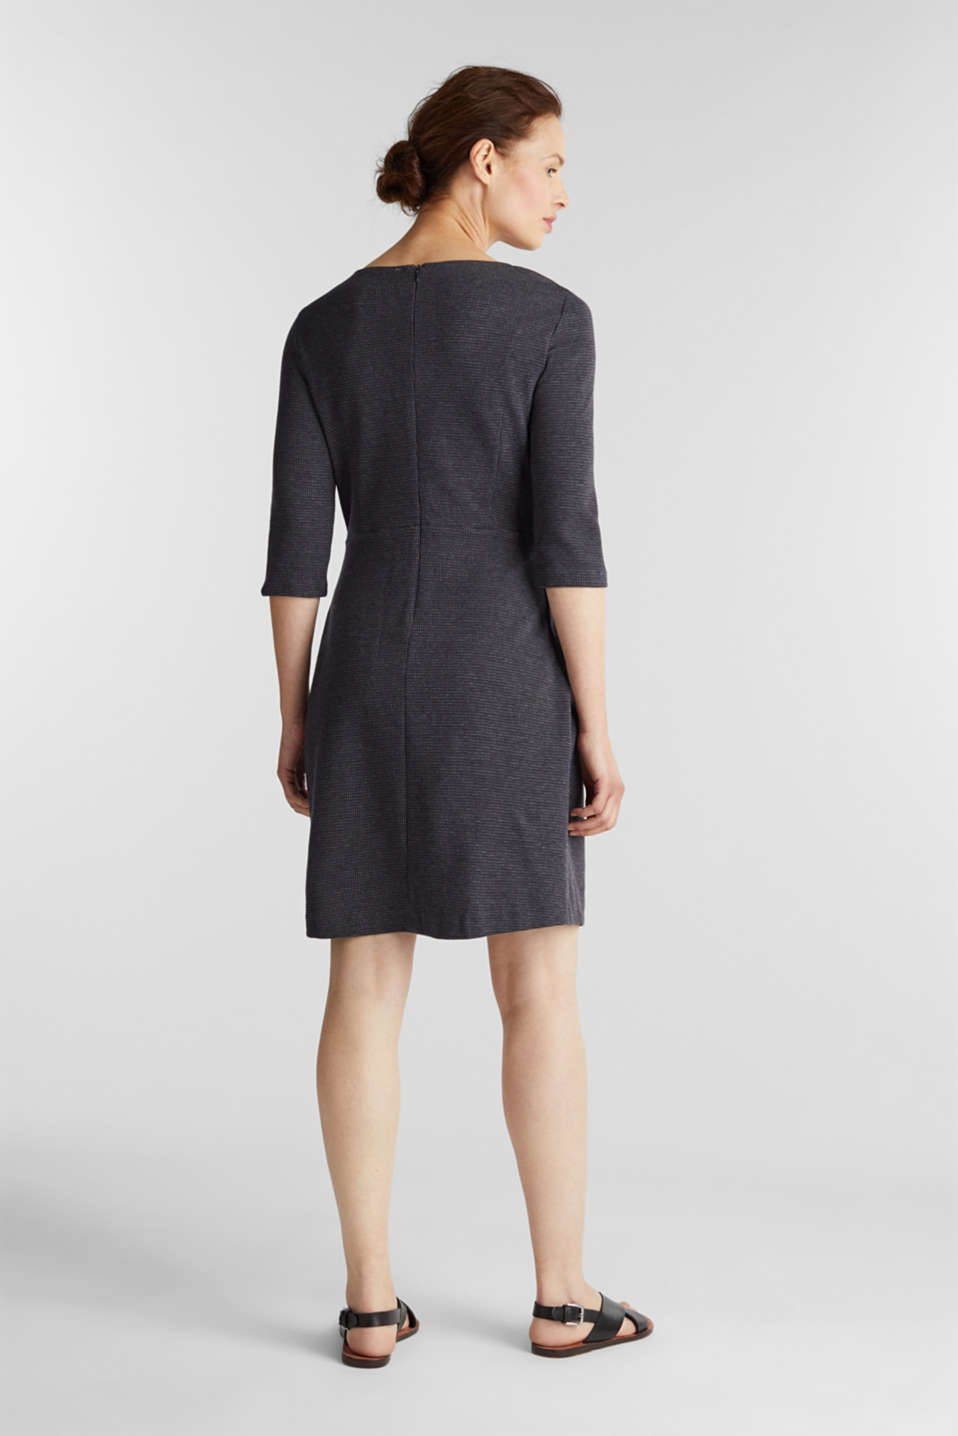 Stretch jersey dress with a jacquard pattern, GREY BLUE, detail image number 3